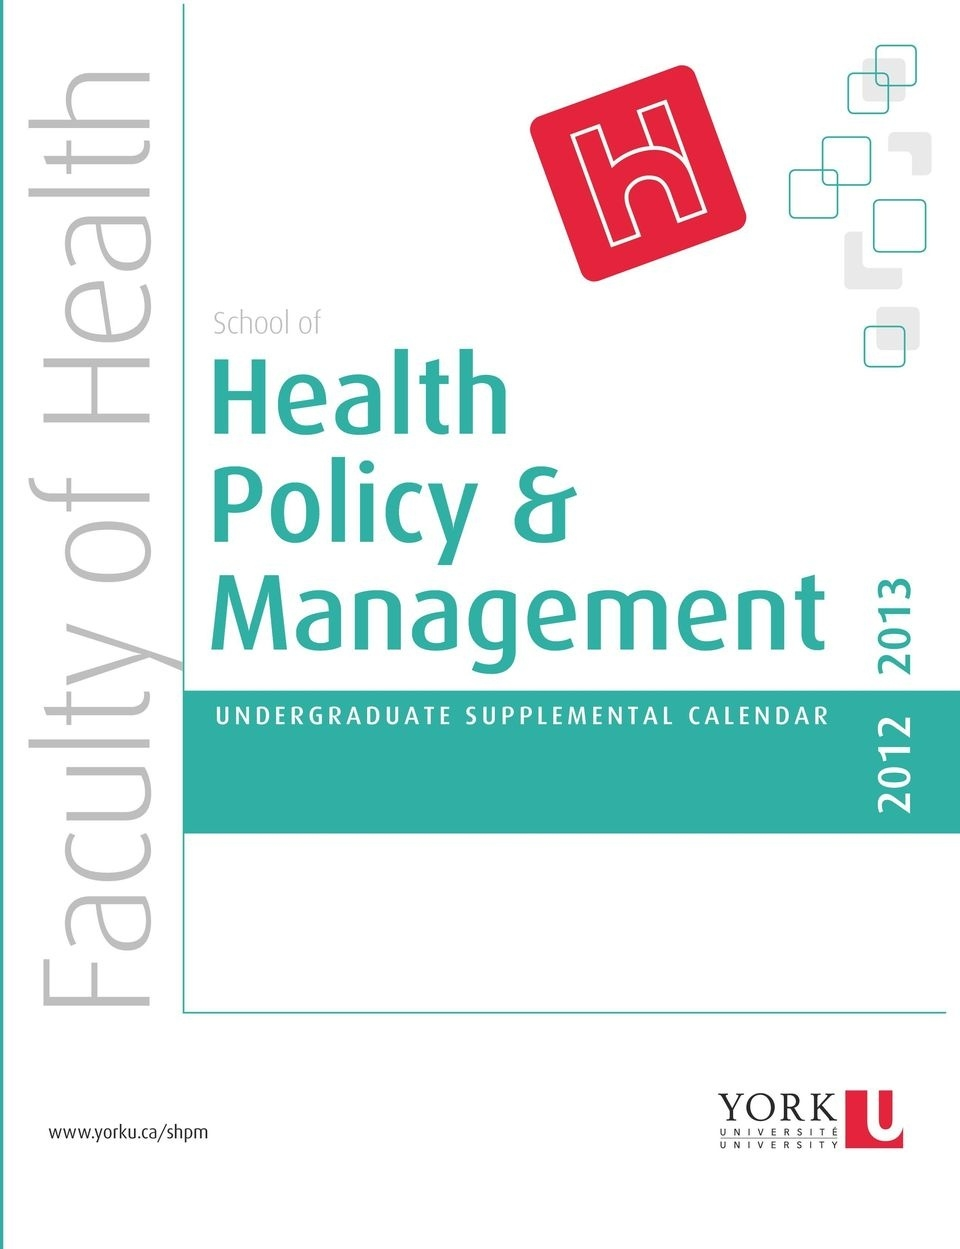 School Of. Health Policy & Management. Faculty Of Health_York U School Calendar